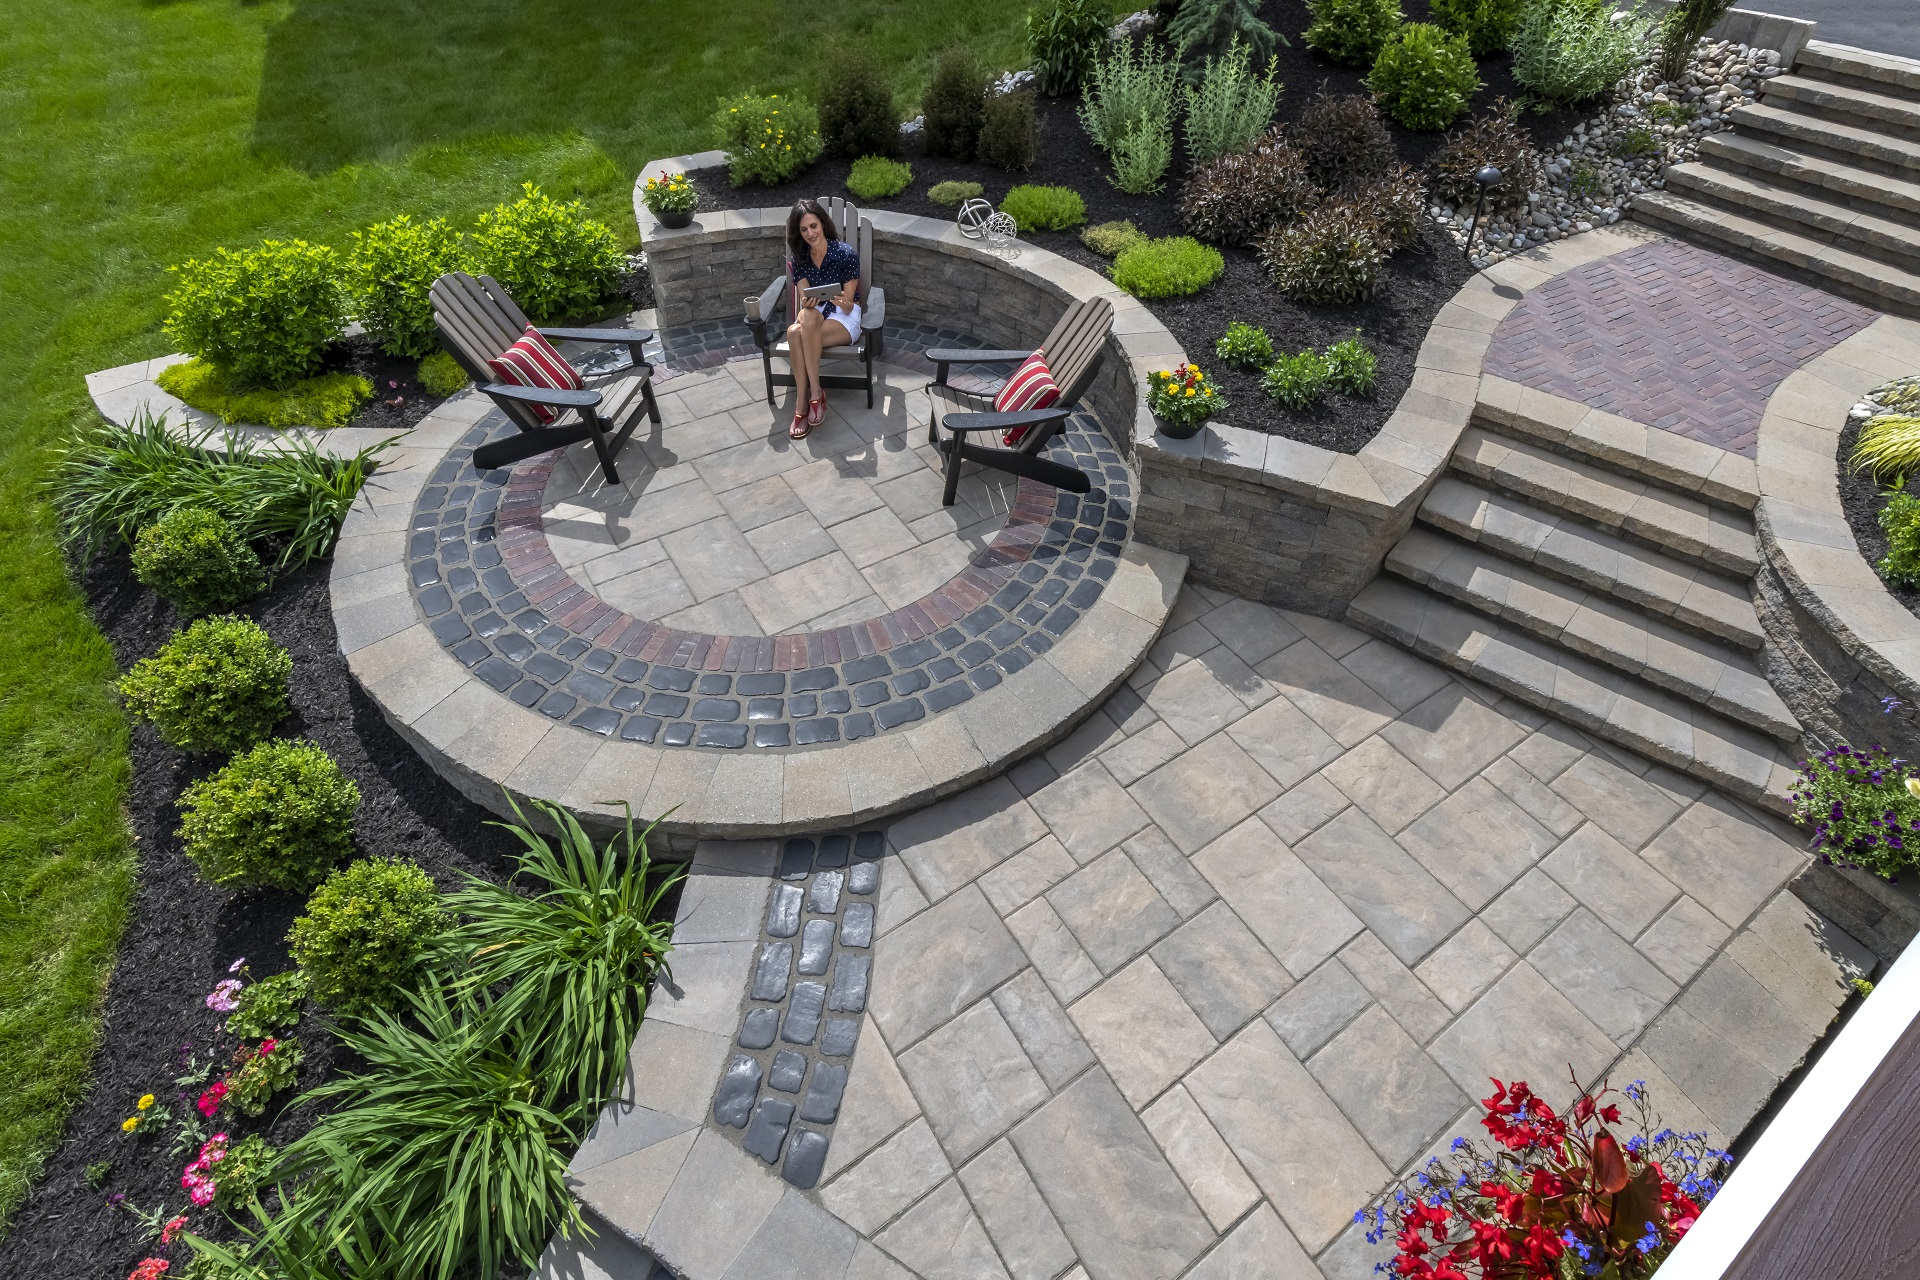 Landscape design in Shelby Township - Unilock patio pavers